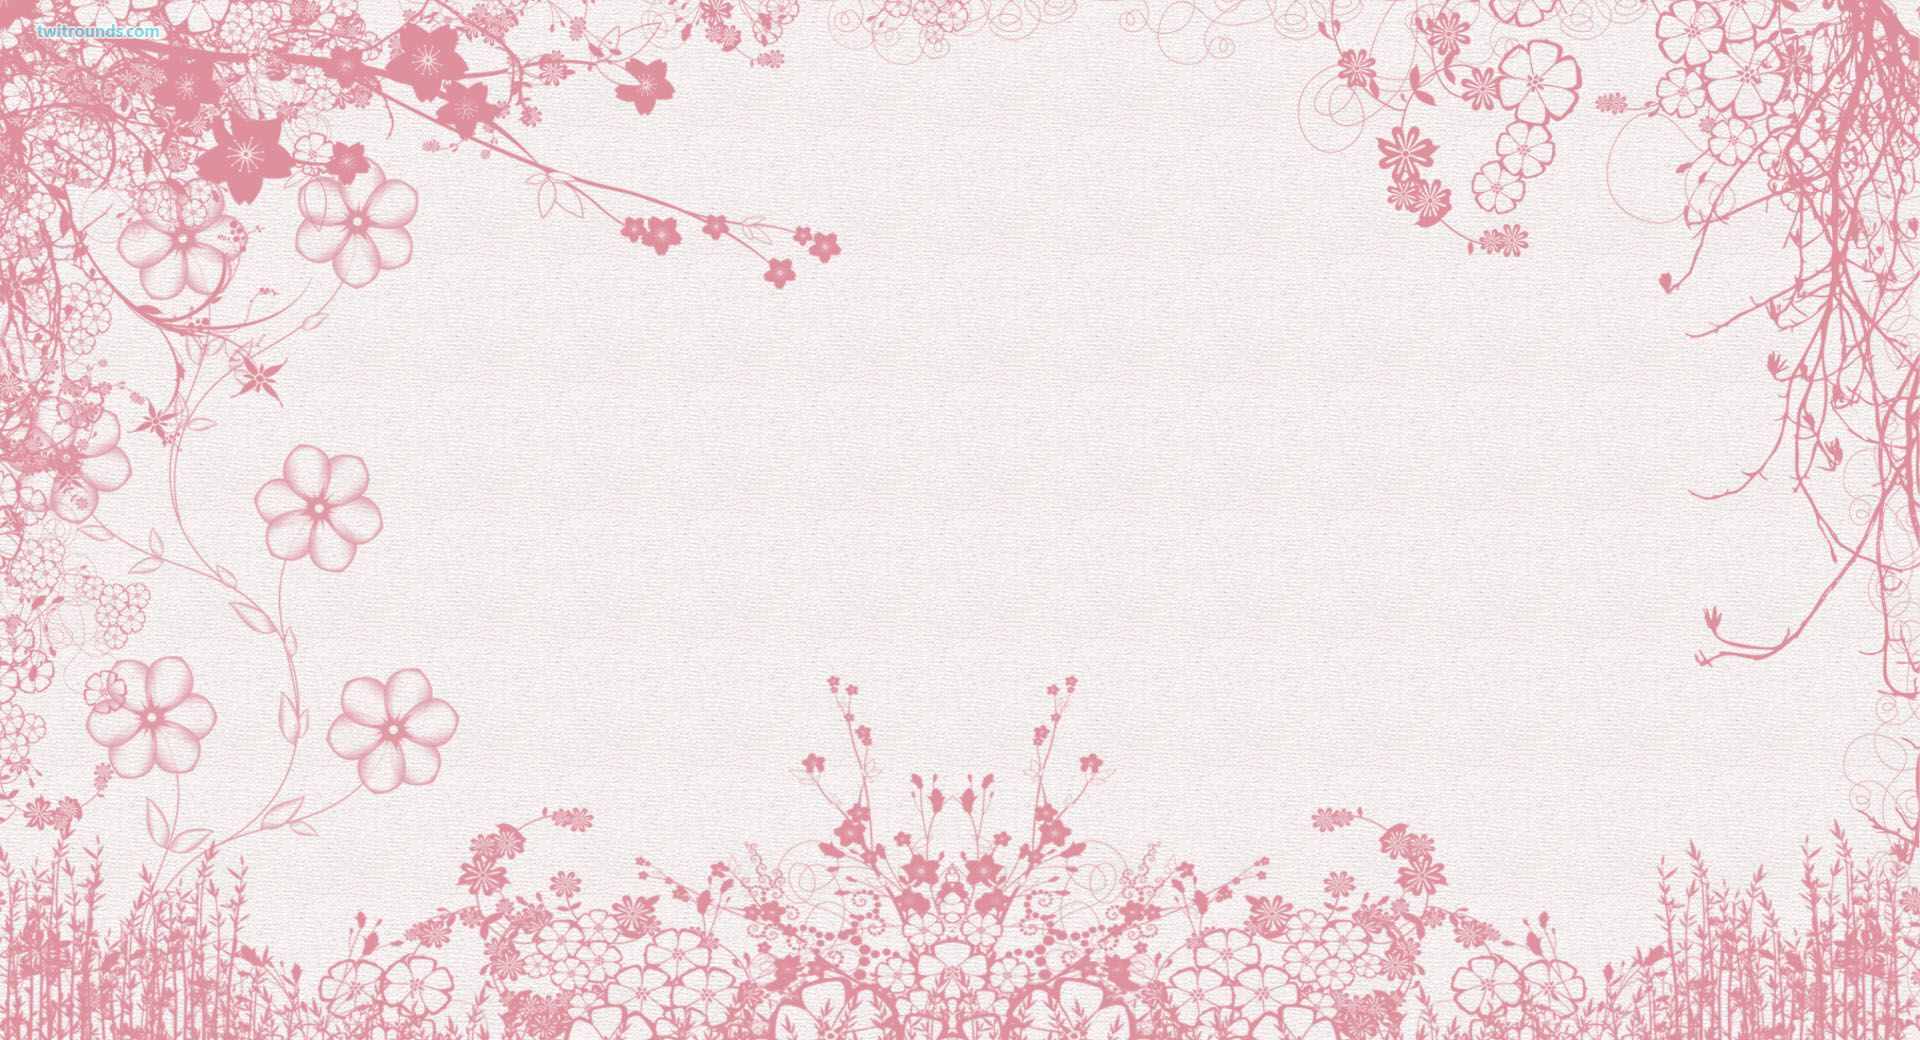 Flowerbackground pink flowers twitter background twitter flowerbackground pink flowers twitter background twitter backgrounds wallpaper mightylinksfo Choice Image